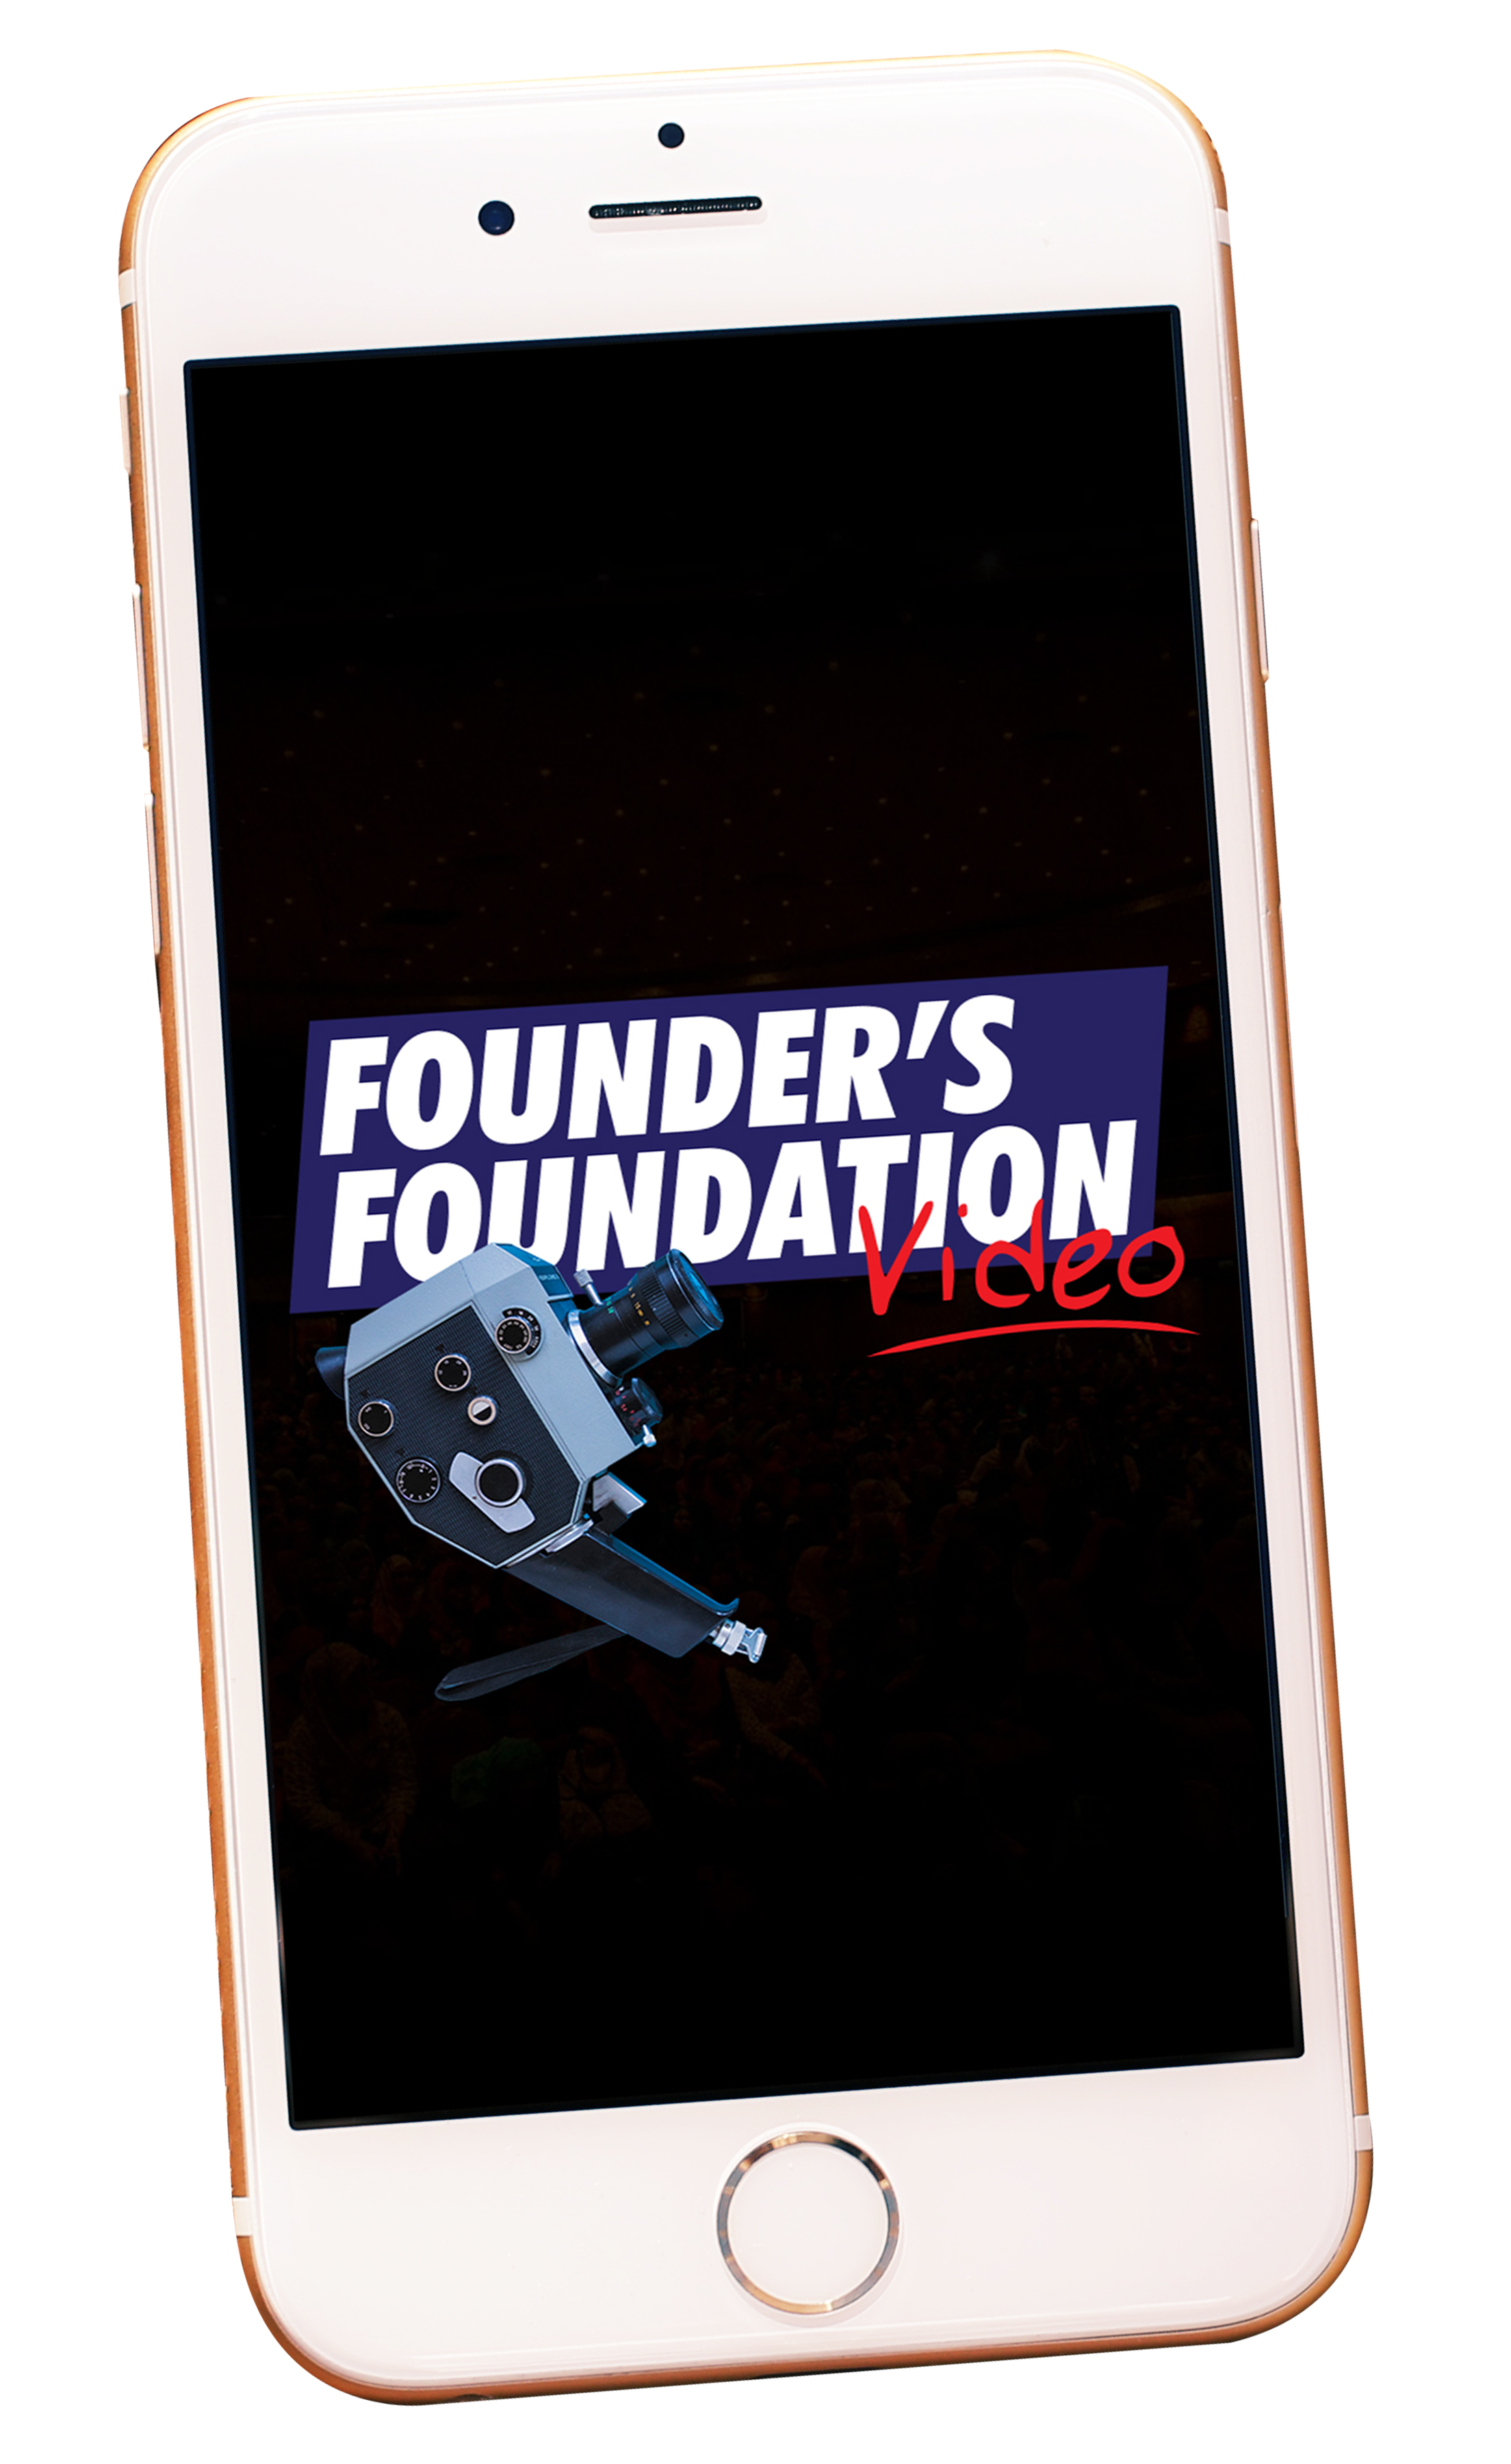 [Free Video] Founder's Foundation